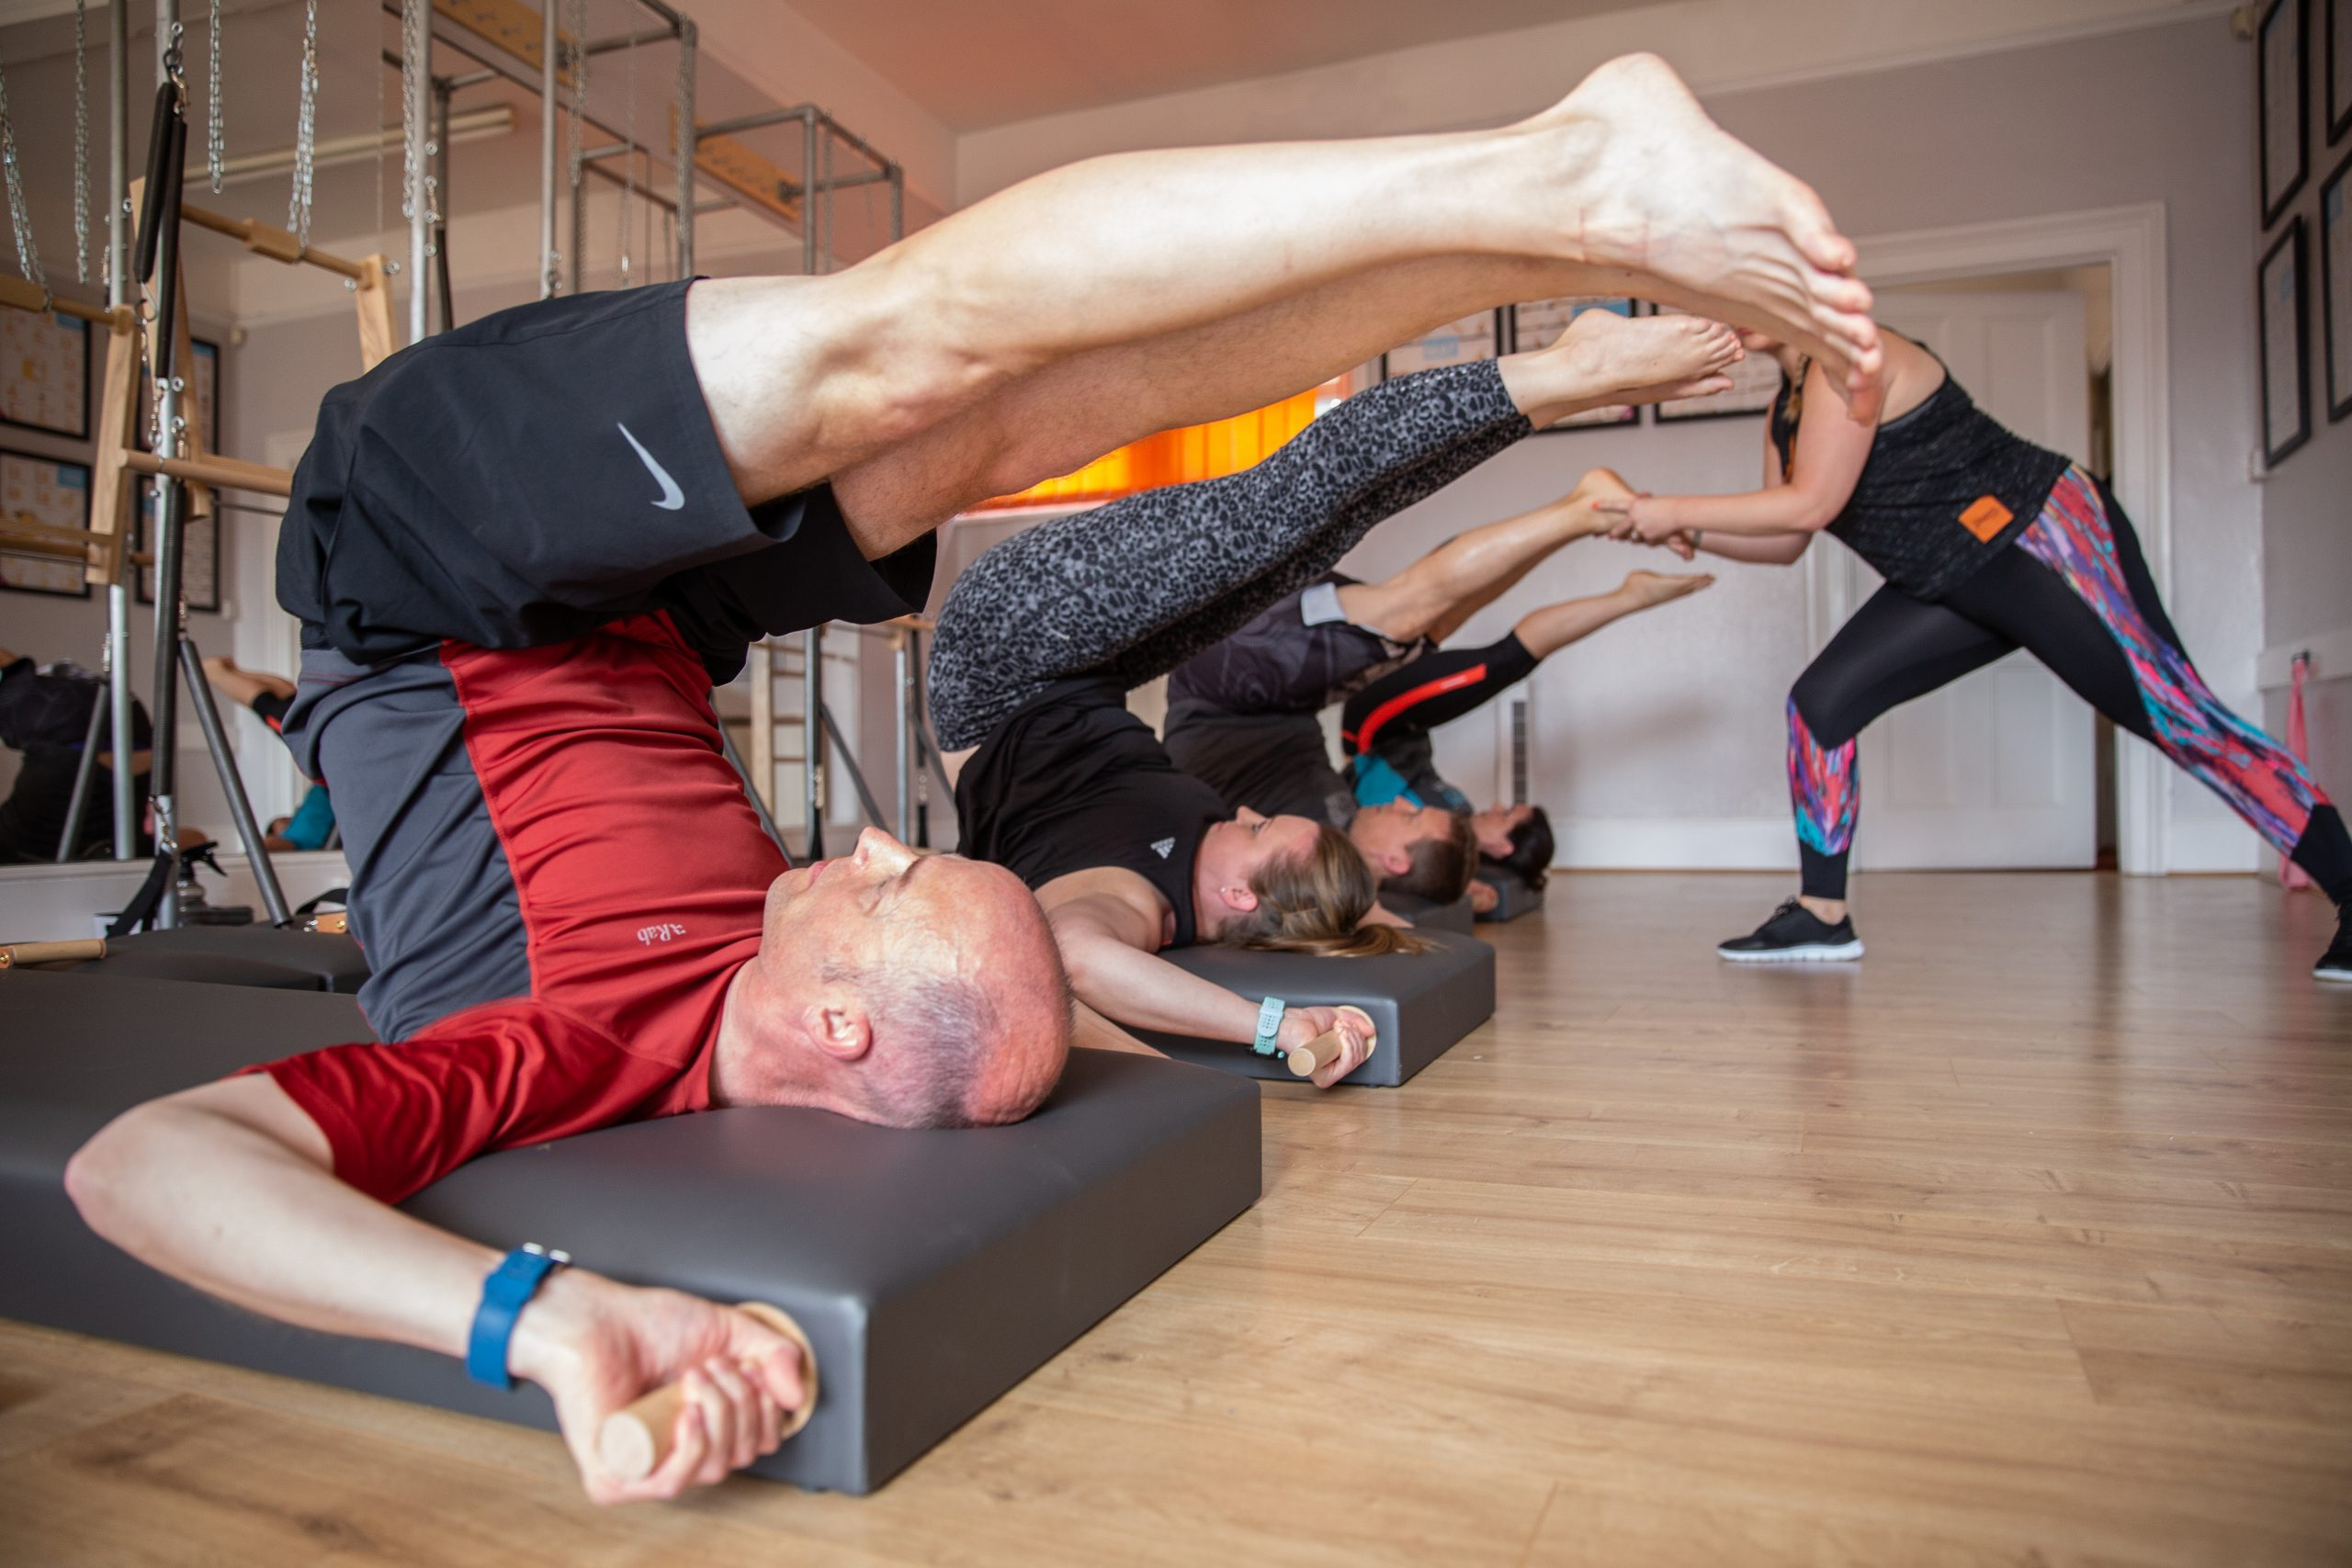 A classical Pilates class in full flow